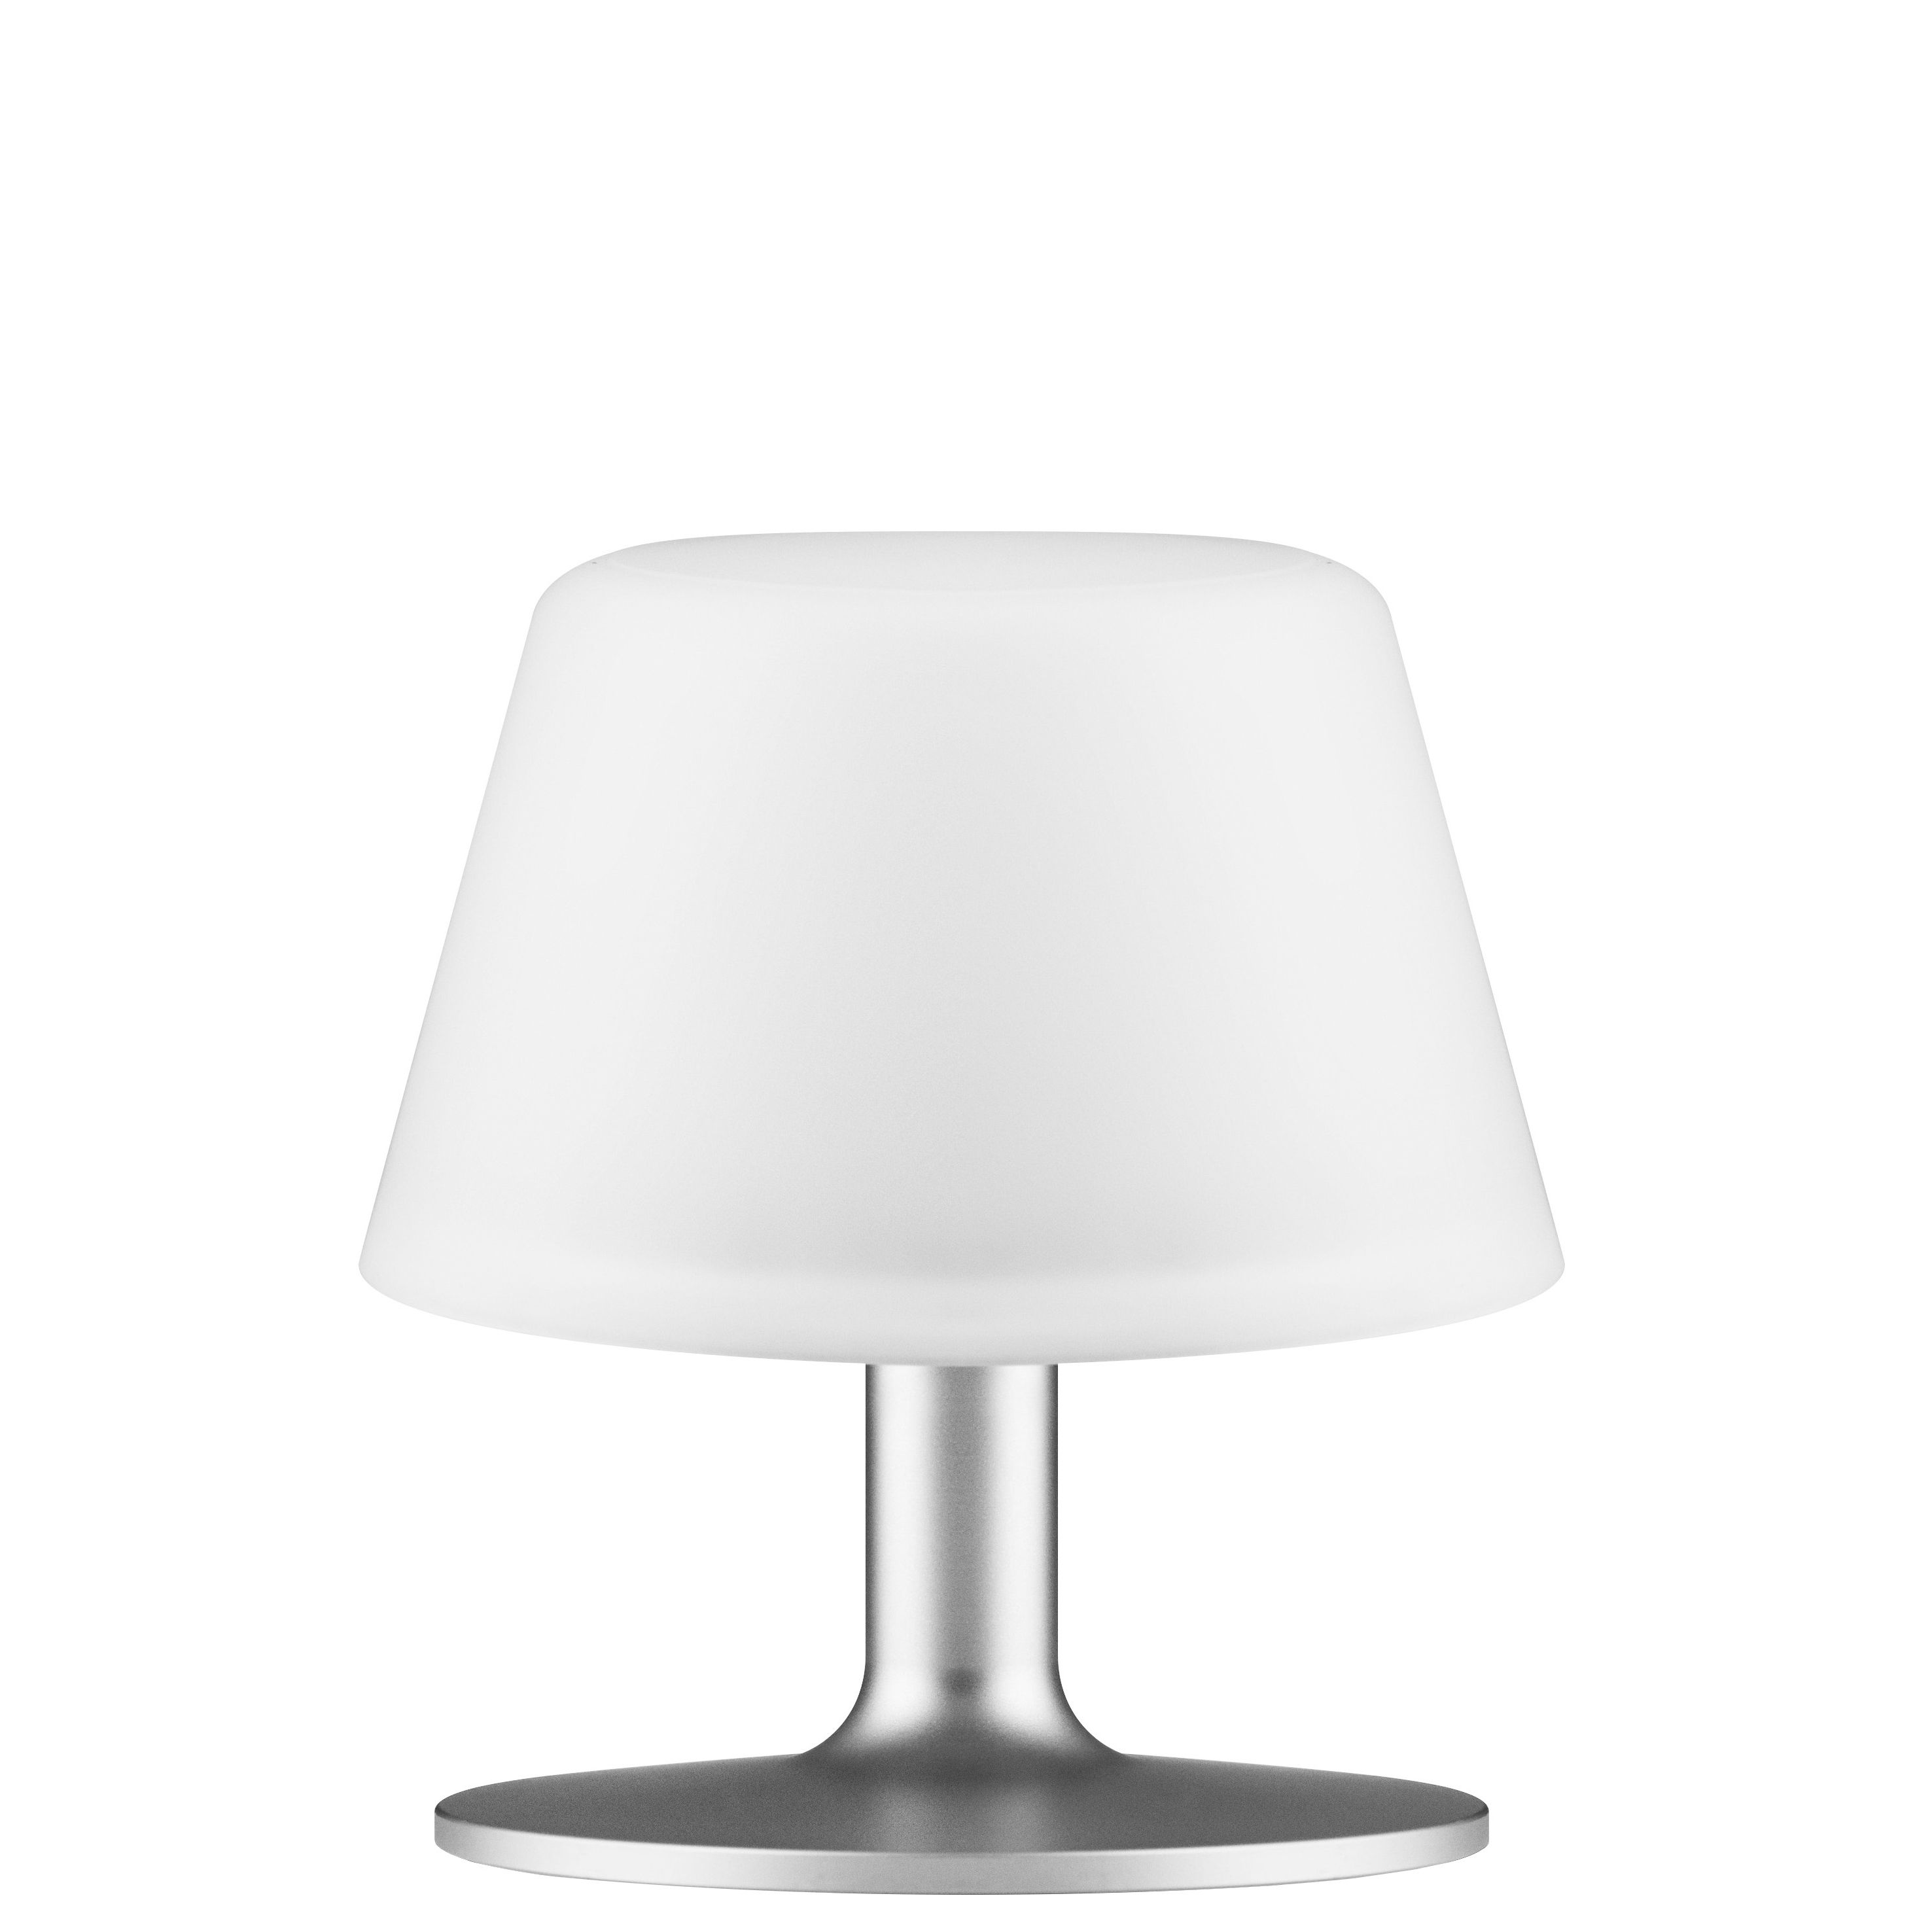 Lighting - Table Lamps - Sunlight Small Solar lamp - H 15 cm by Eva Solo - Small - White & aluminium - Anodized aluminium, Frosted glass